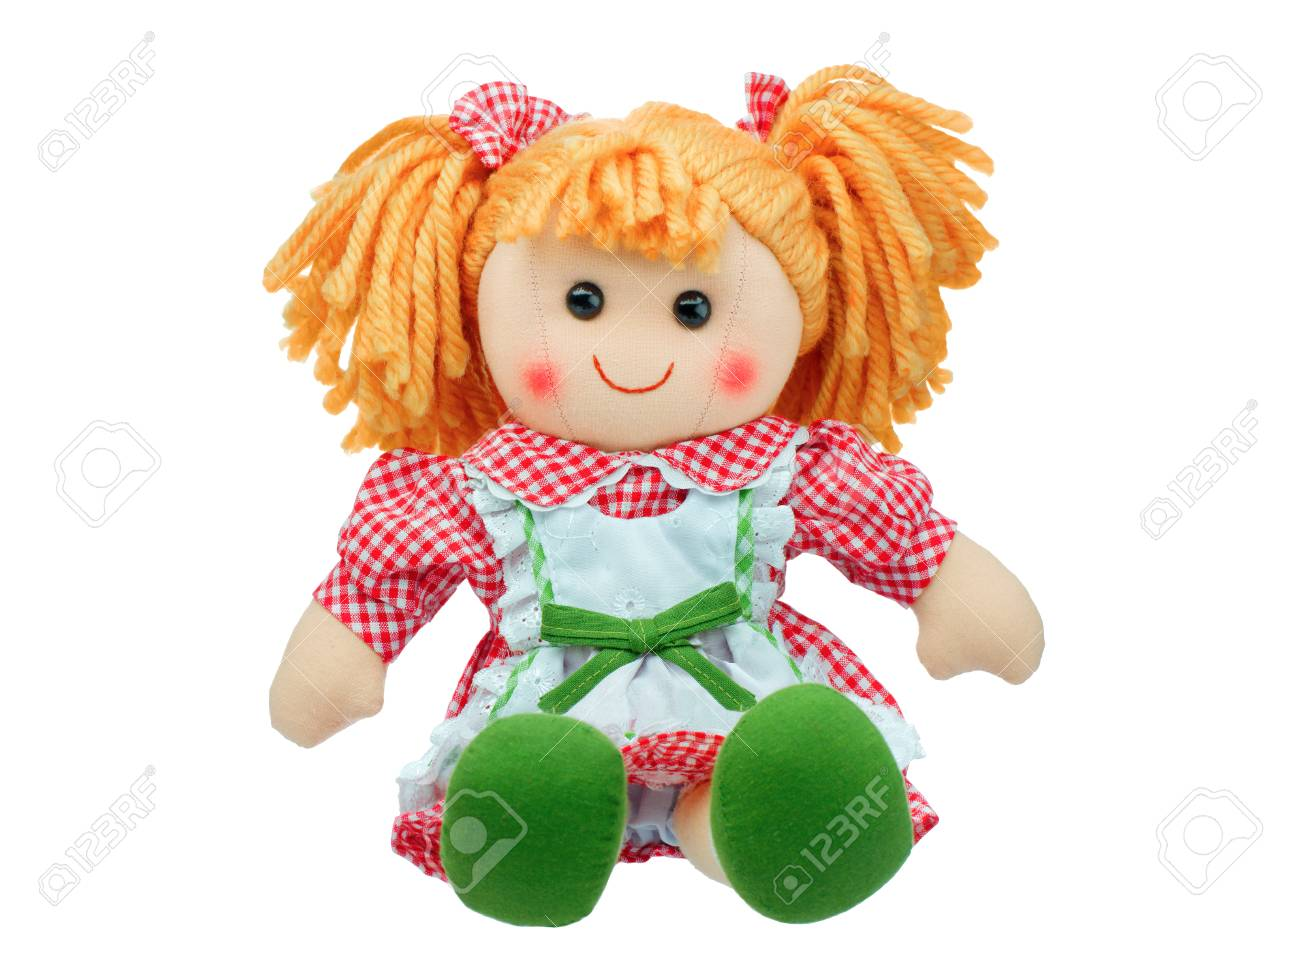 Smiling sit Cute rag doll isolated - 89518720